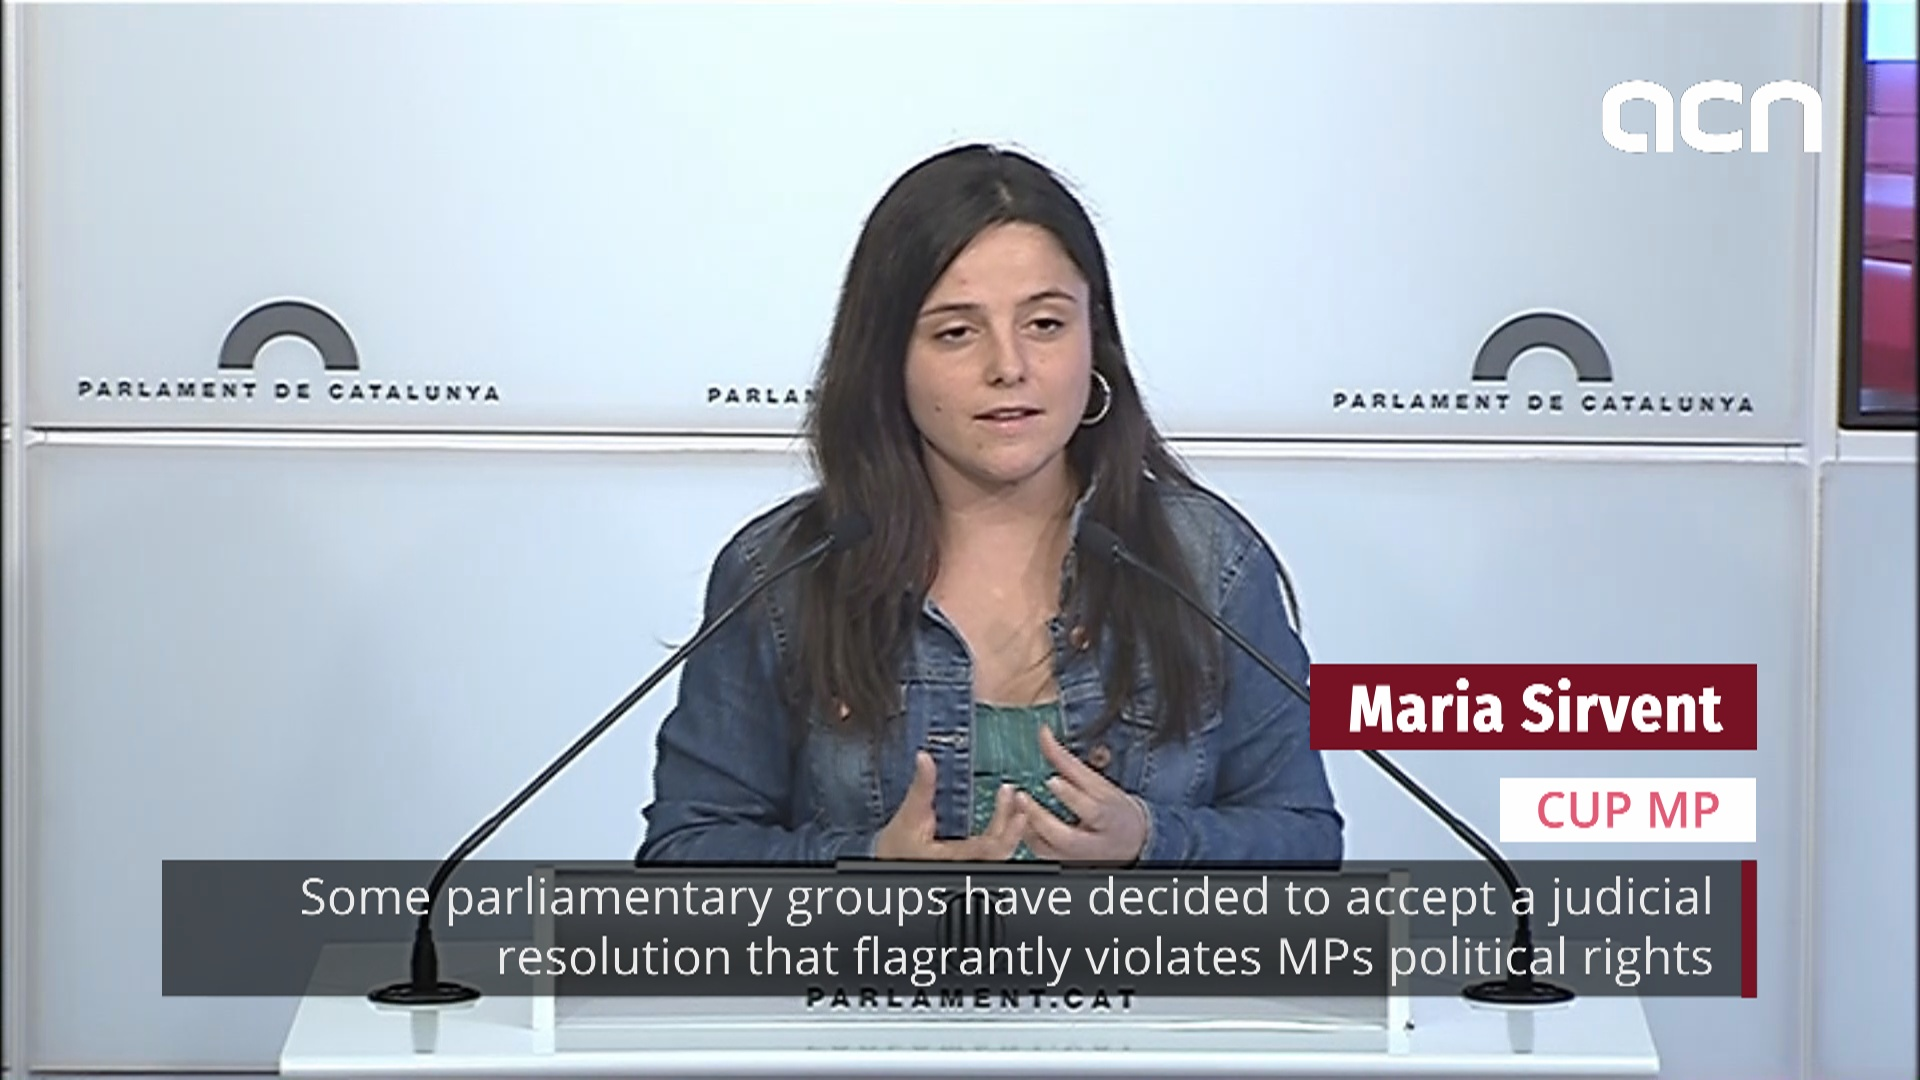 CUP: 'Some groups accept resolution that violates MPs rights'